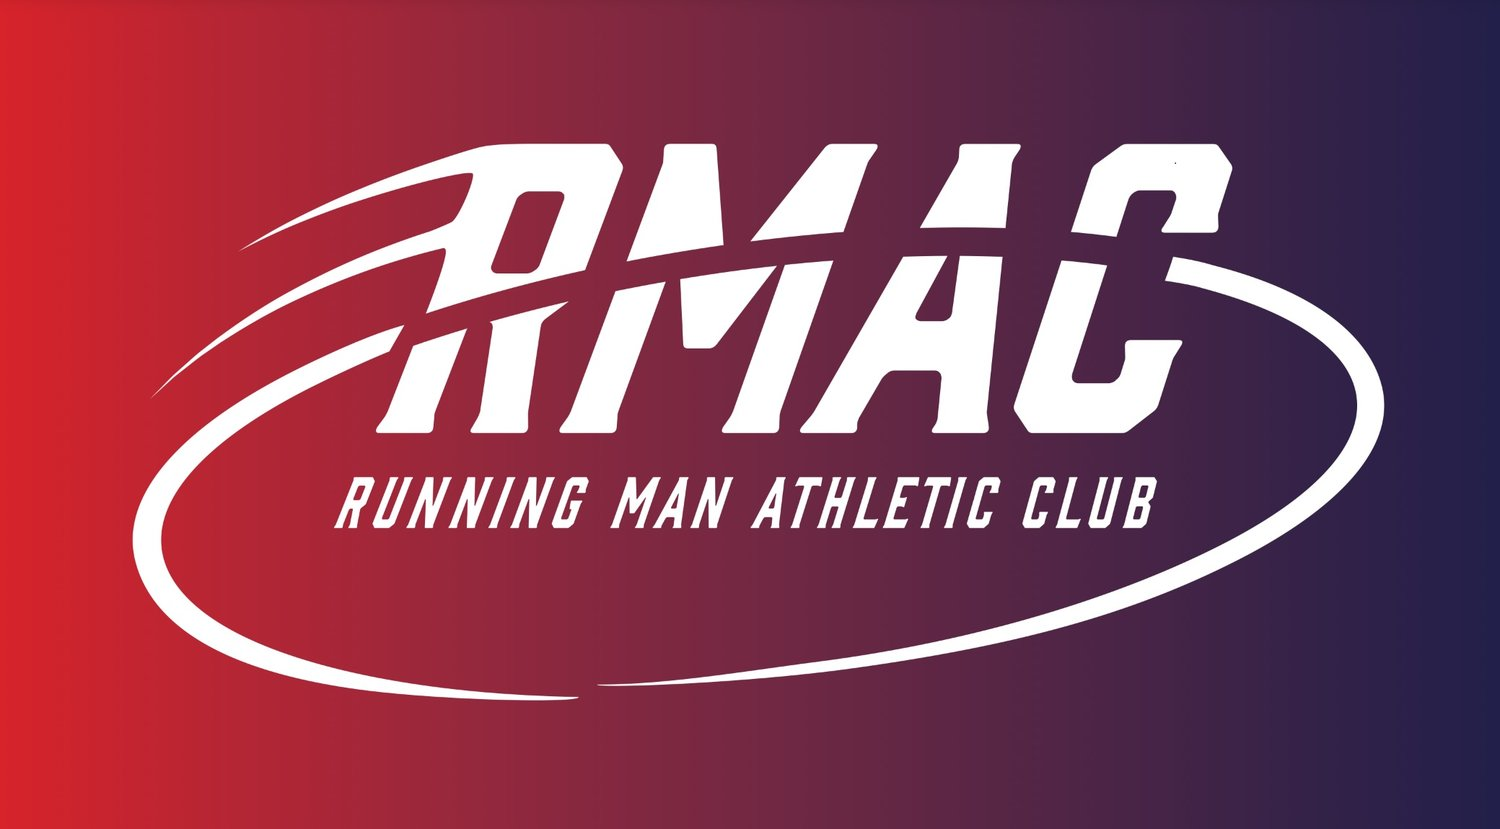 Running Man Athletic Club